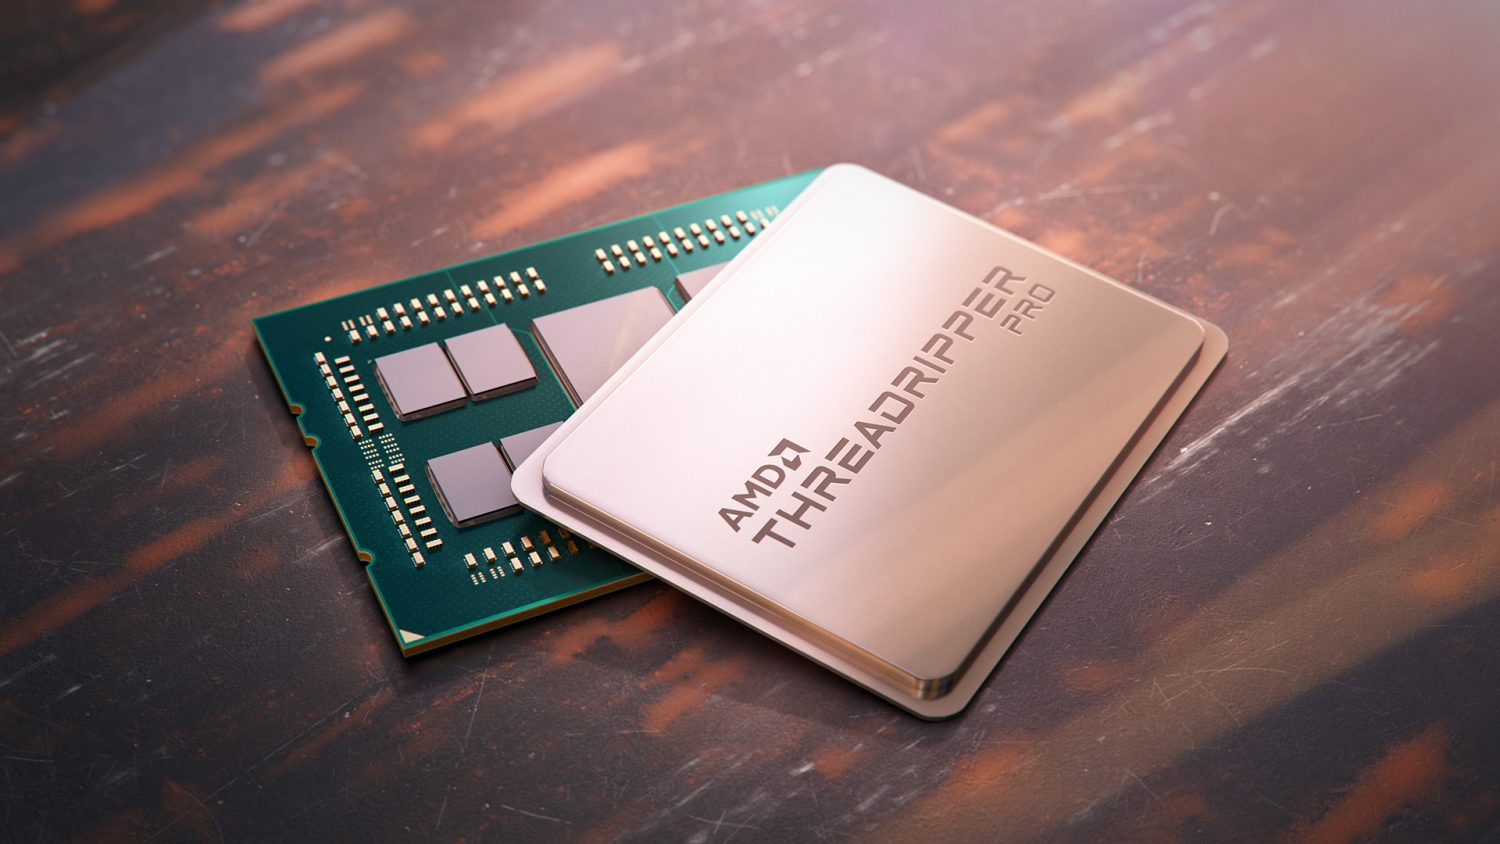 Threadripper Pro CPU